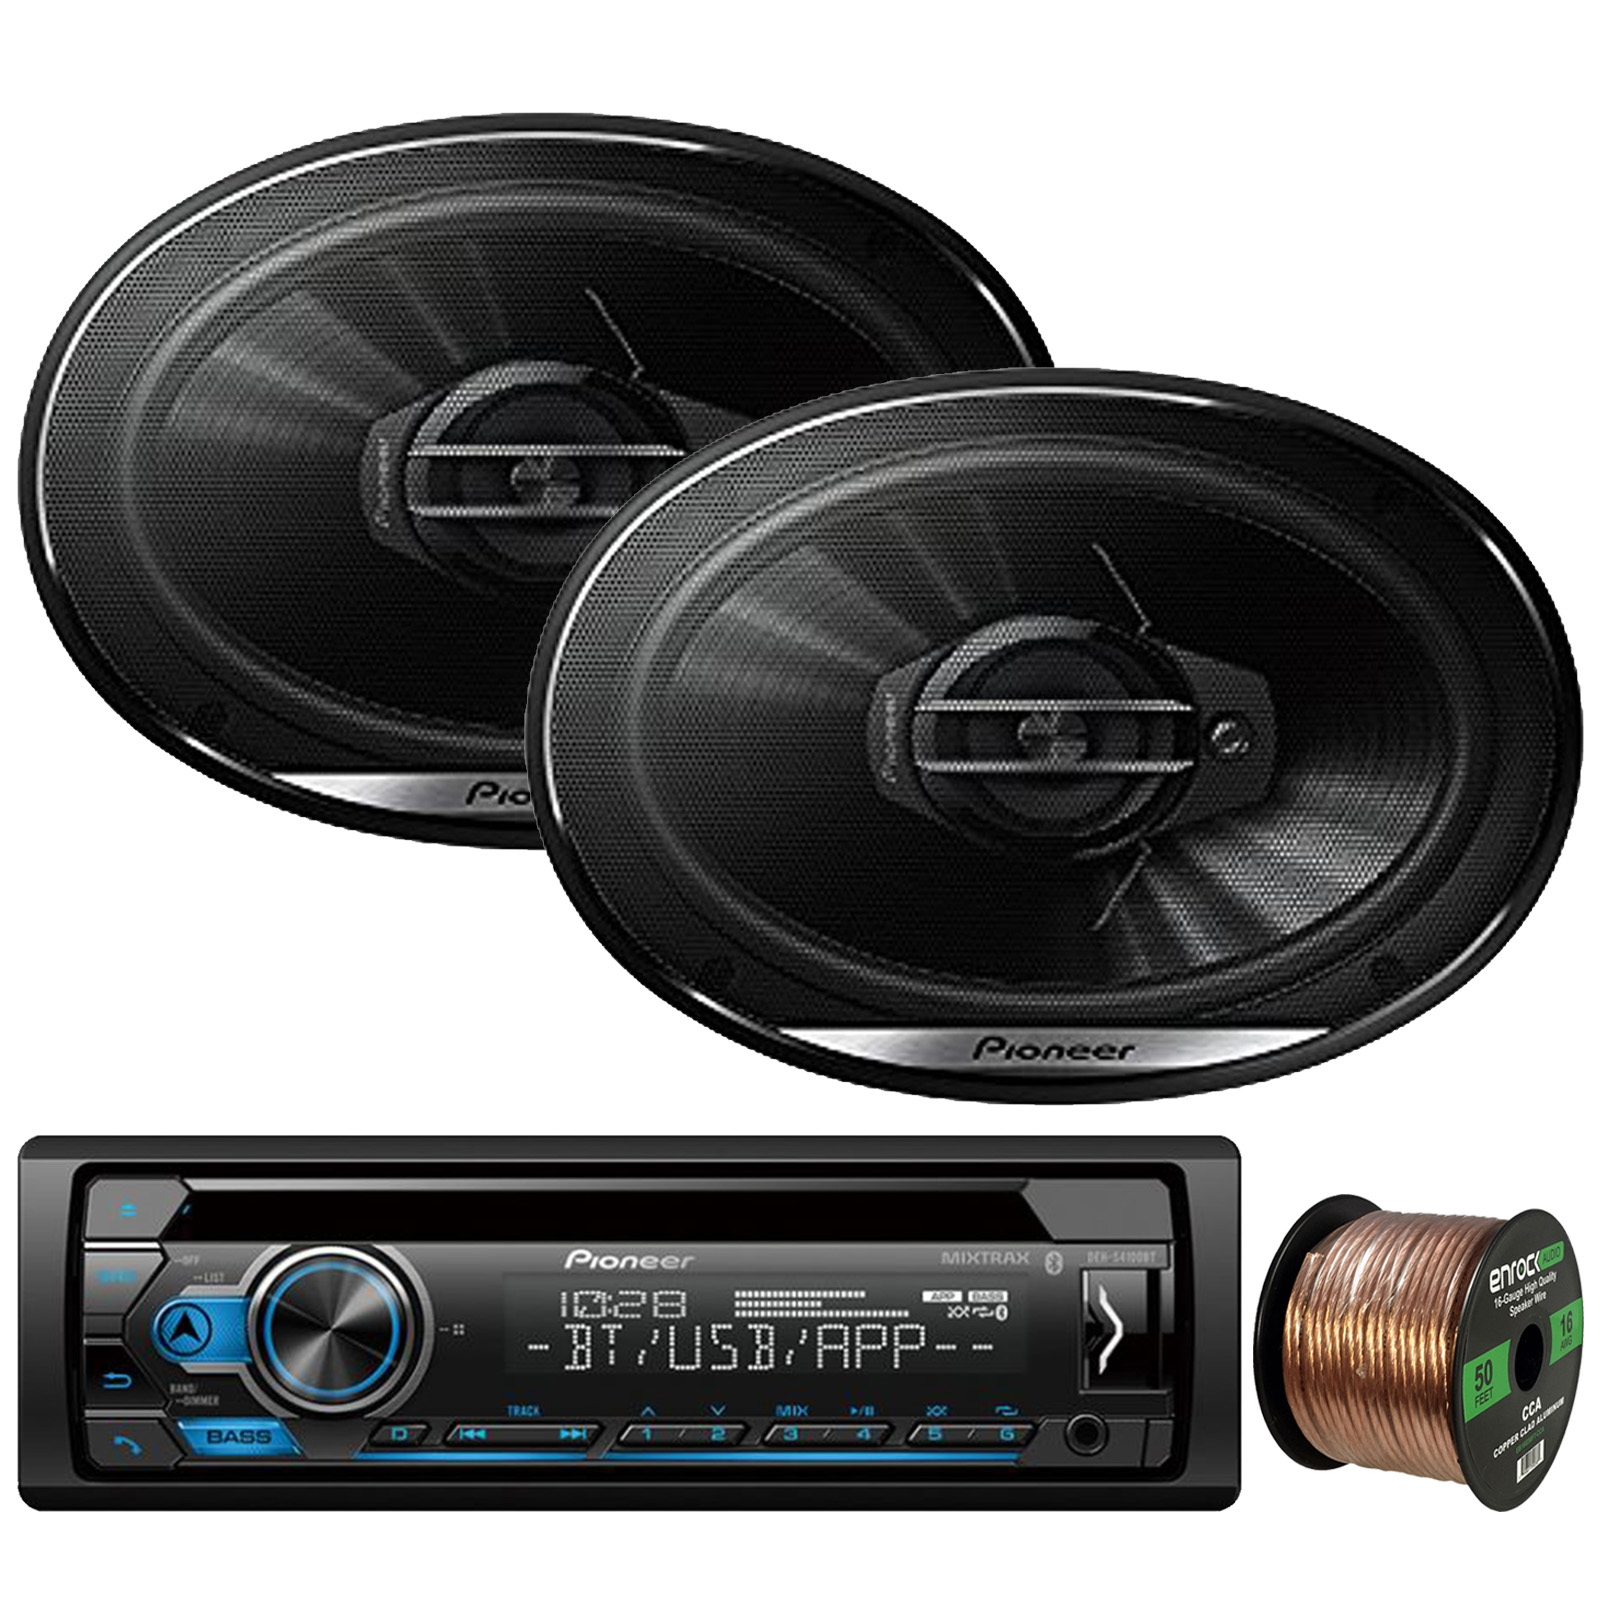 "Pioneer DEH-S4100BT In-Dash Single-DIN CD Player Bluetooth Receiver, 2 x Pioneer TS-G6930F 6x9"" 3-Way Coaxial 400W Max Car Speakers, Enrock Audio 16-Gauge 50Ft. CCA Speaker Wire"